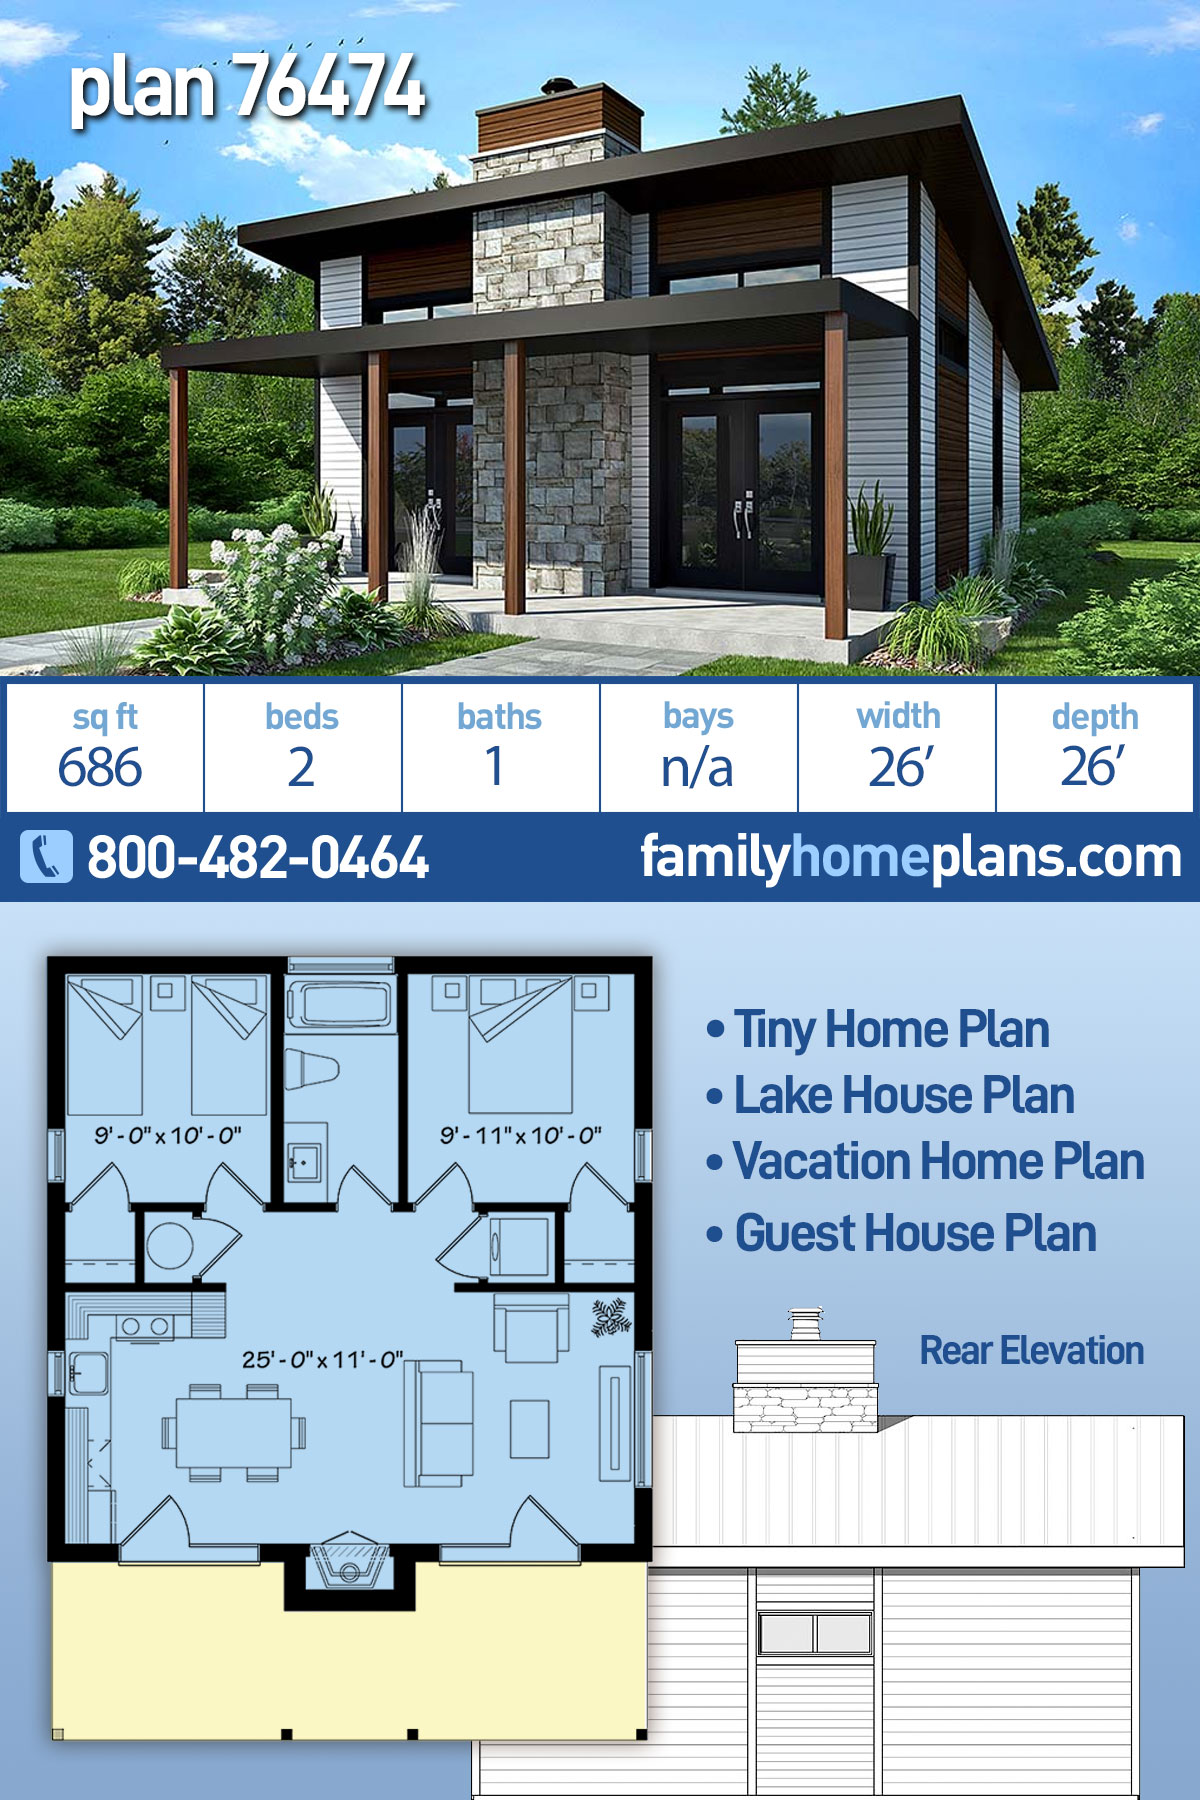 Contemporary, Modern House Plan 76474 with 2 Beds, 1 Baths